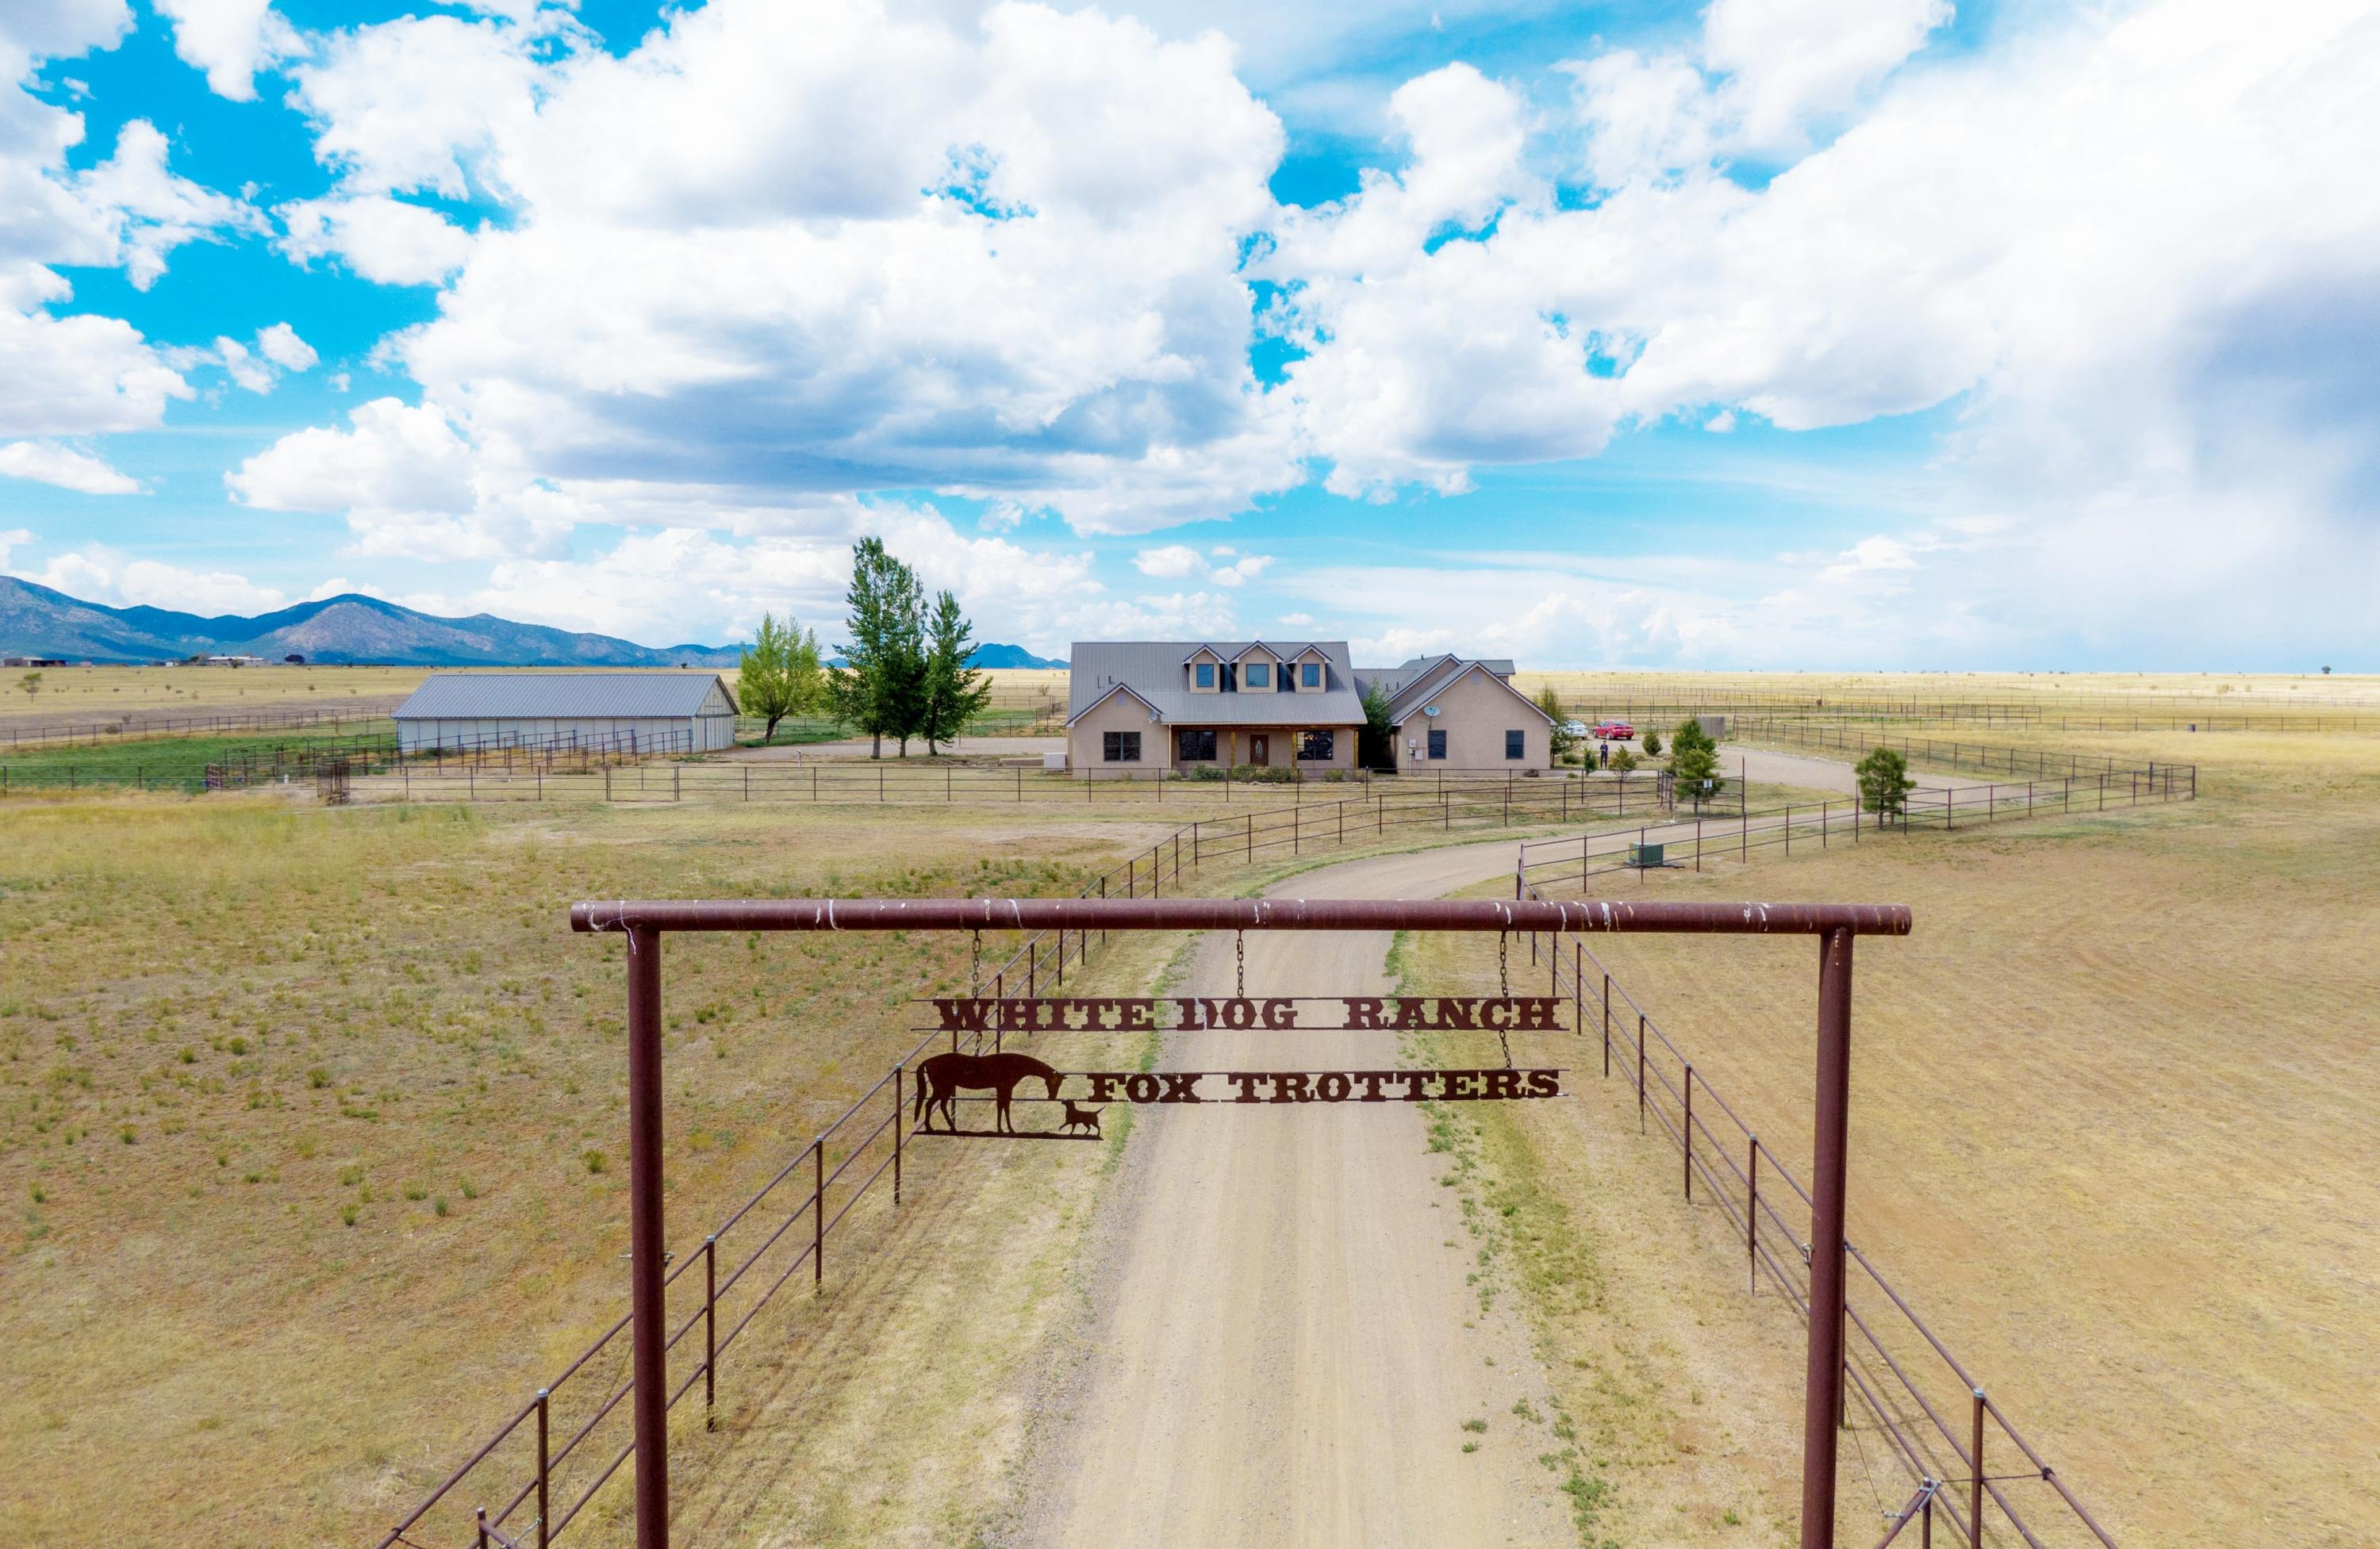 Edgewood & South Santa Fe County's Premier Residential horse facility, White Dog Ranch. 20 acres pipe-fenced & cross fenced w/water in each paddock.  Barnmaster 8-stall barn, w/tack room, feed storage and two convertible mare foaling stalls.  Full size arena and room for cows.  Plenty of trailer parking and several RV hookups.  Secure lockable entrance drive, and central acreage area fenced for dogs surrounding the residence. Executive Home,  Luxury interior with living room wood-burning fireplace & master suite pellet stove. Custom tile throughout, no carpet. Large open floor plan, 4/5 bedrooms, 3 full baths.  Gourmet kitchen and keg fridge.  Wired for surround sound, and internet.  Good private well, and radiant floor heat throughout, Don't miss out, Nothing like it on the market!